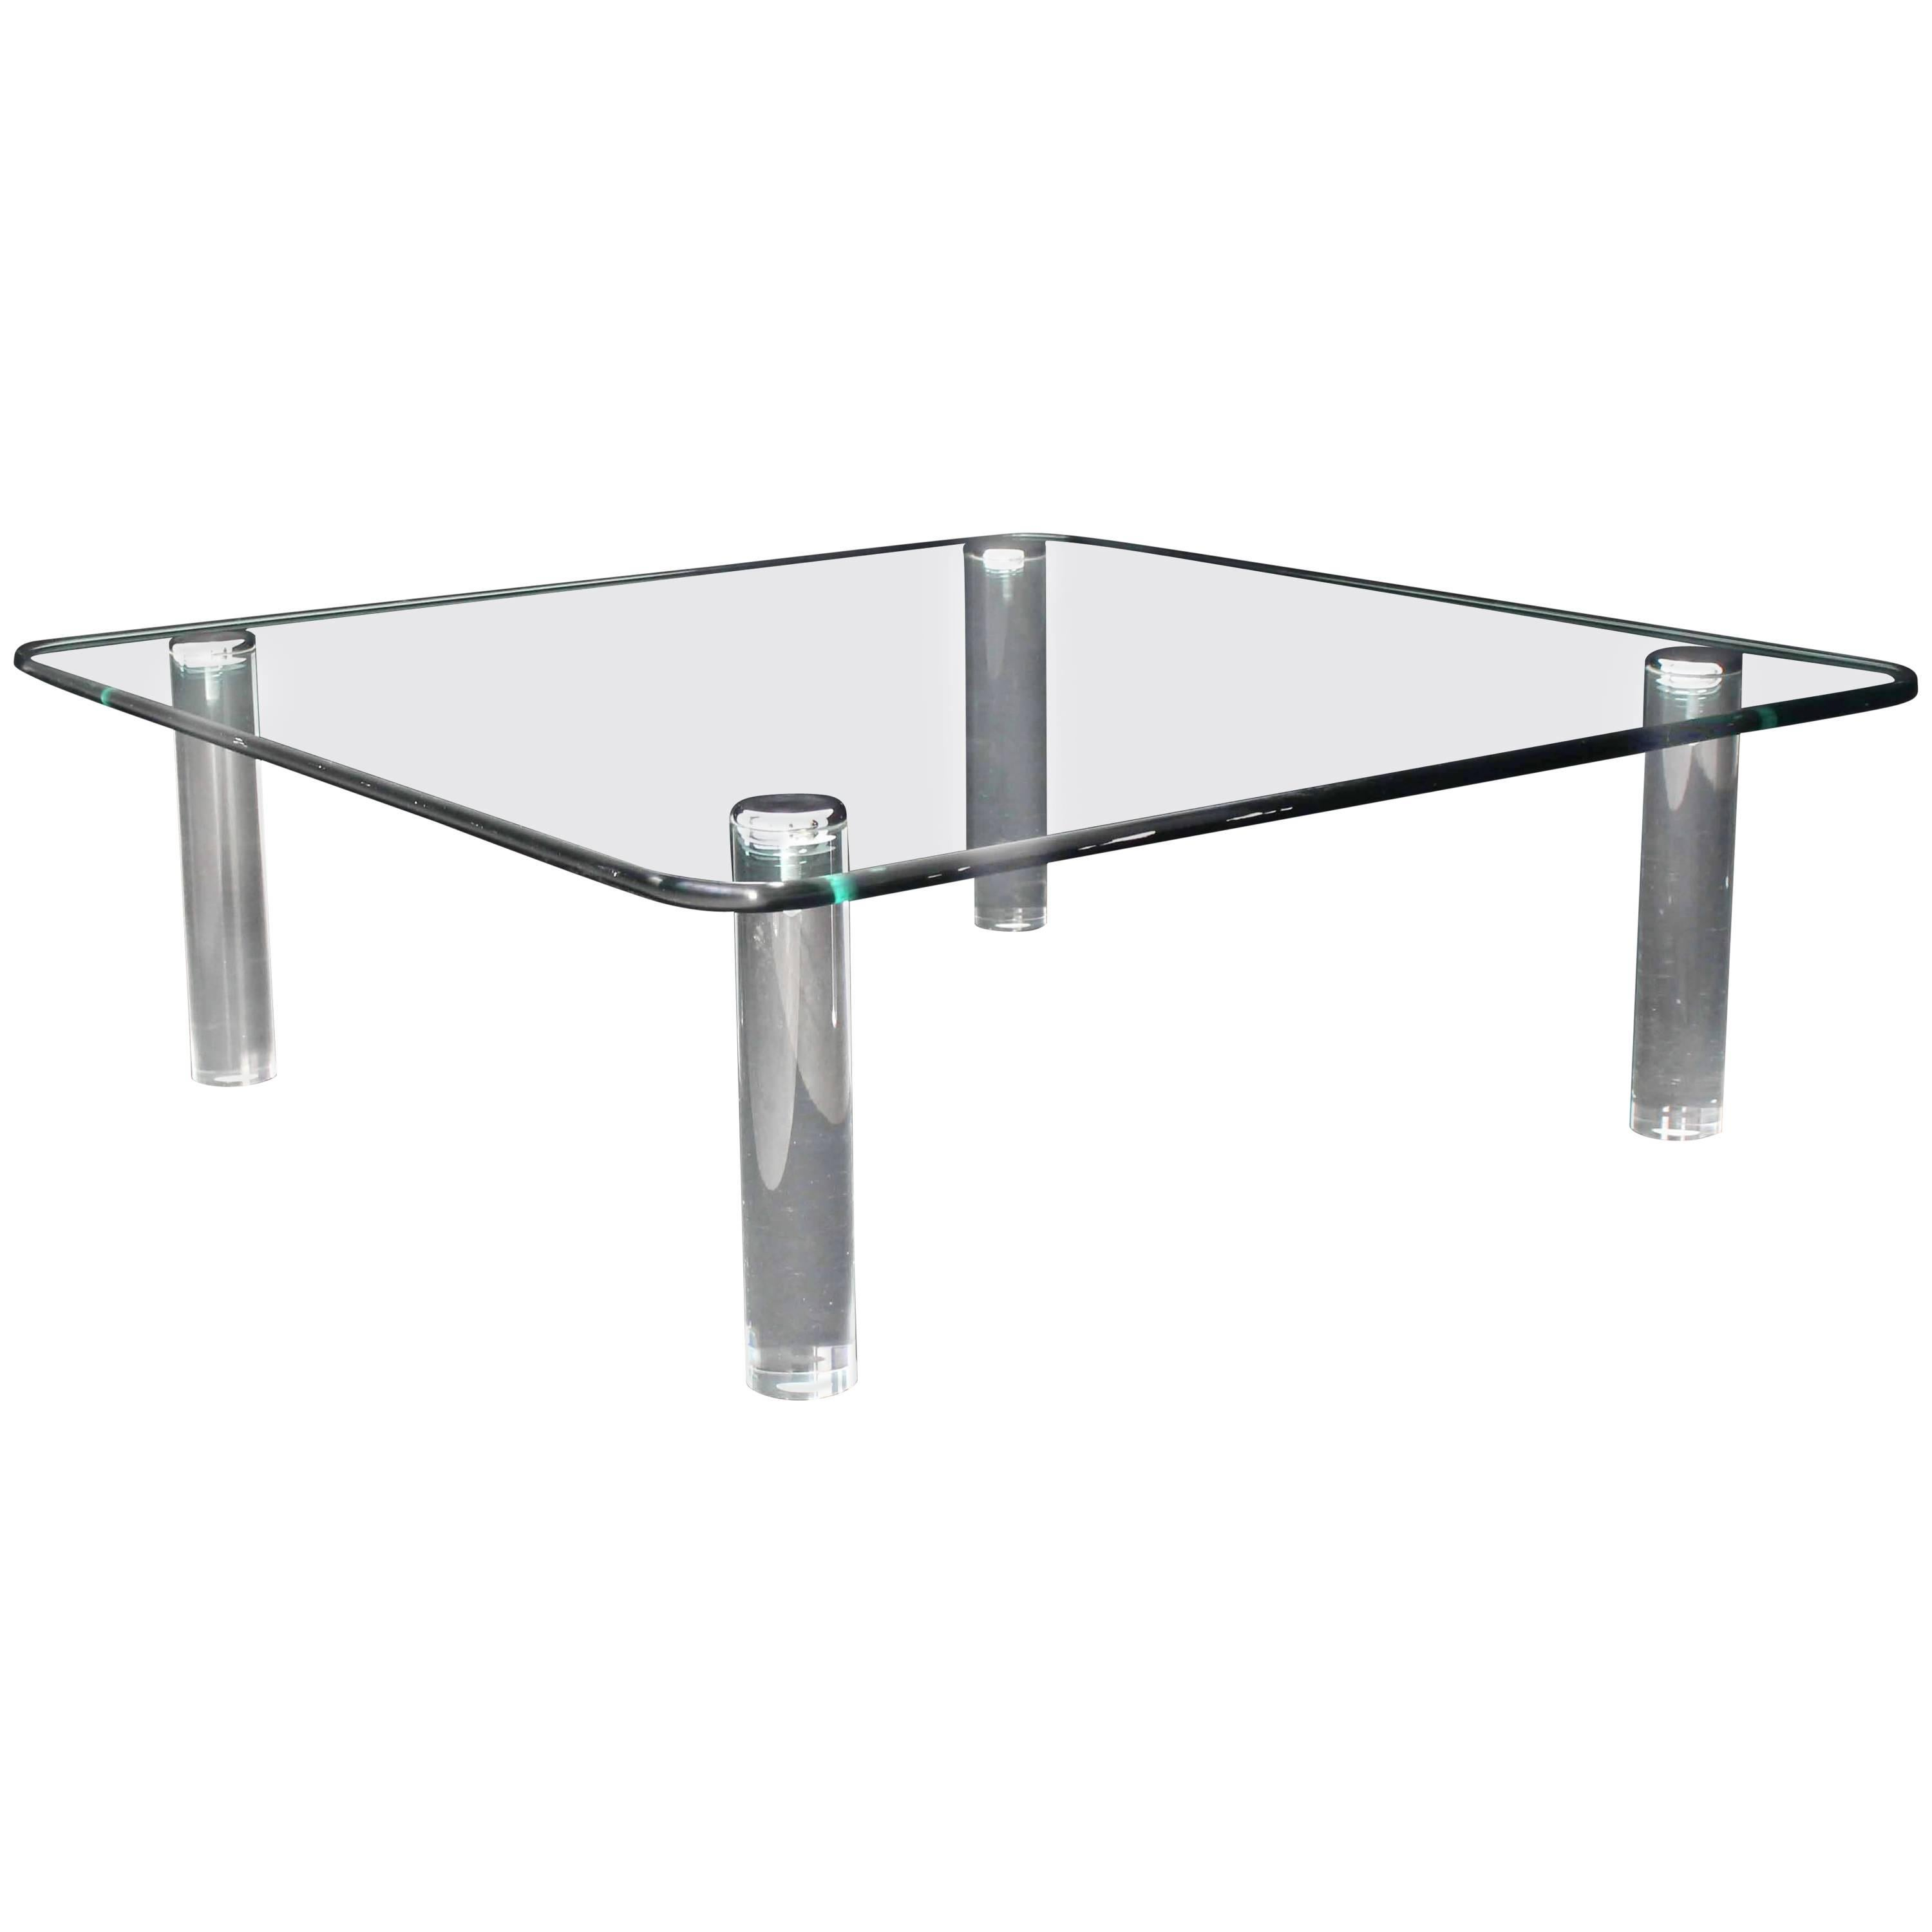 Large Square Rounded Corners Glass Top Coffee Table On Cylinder